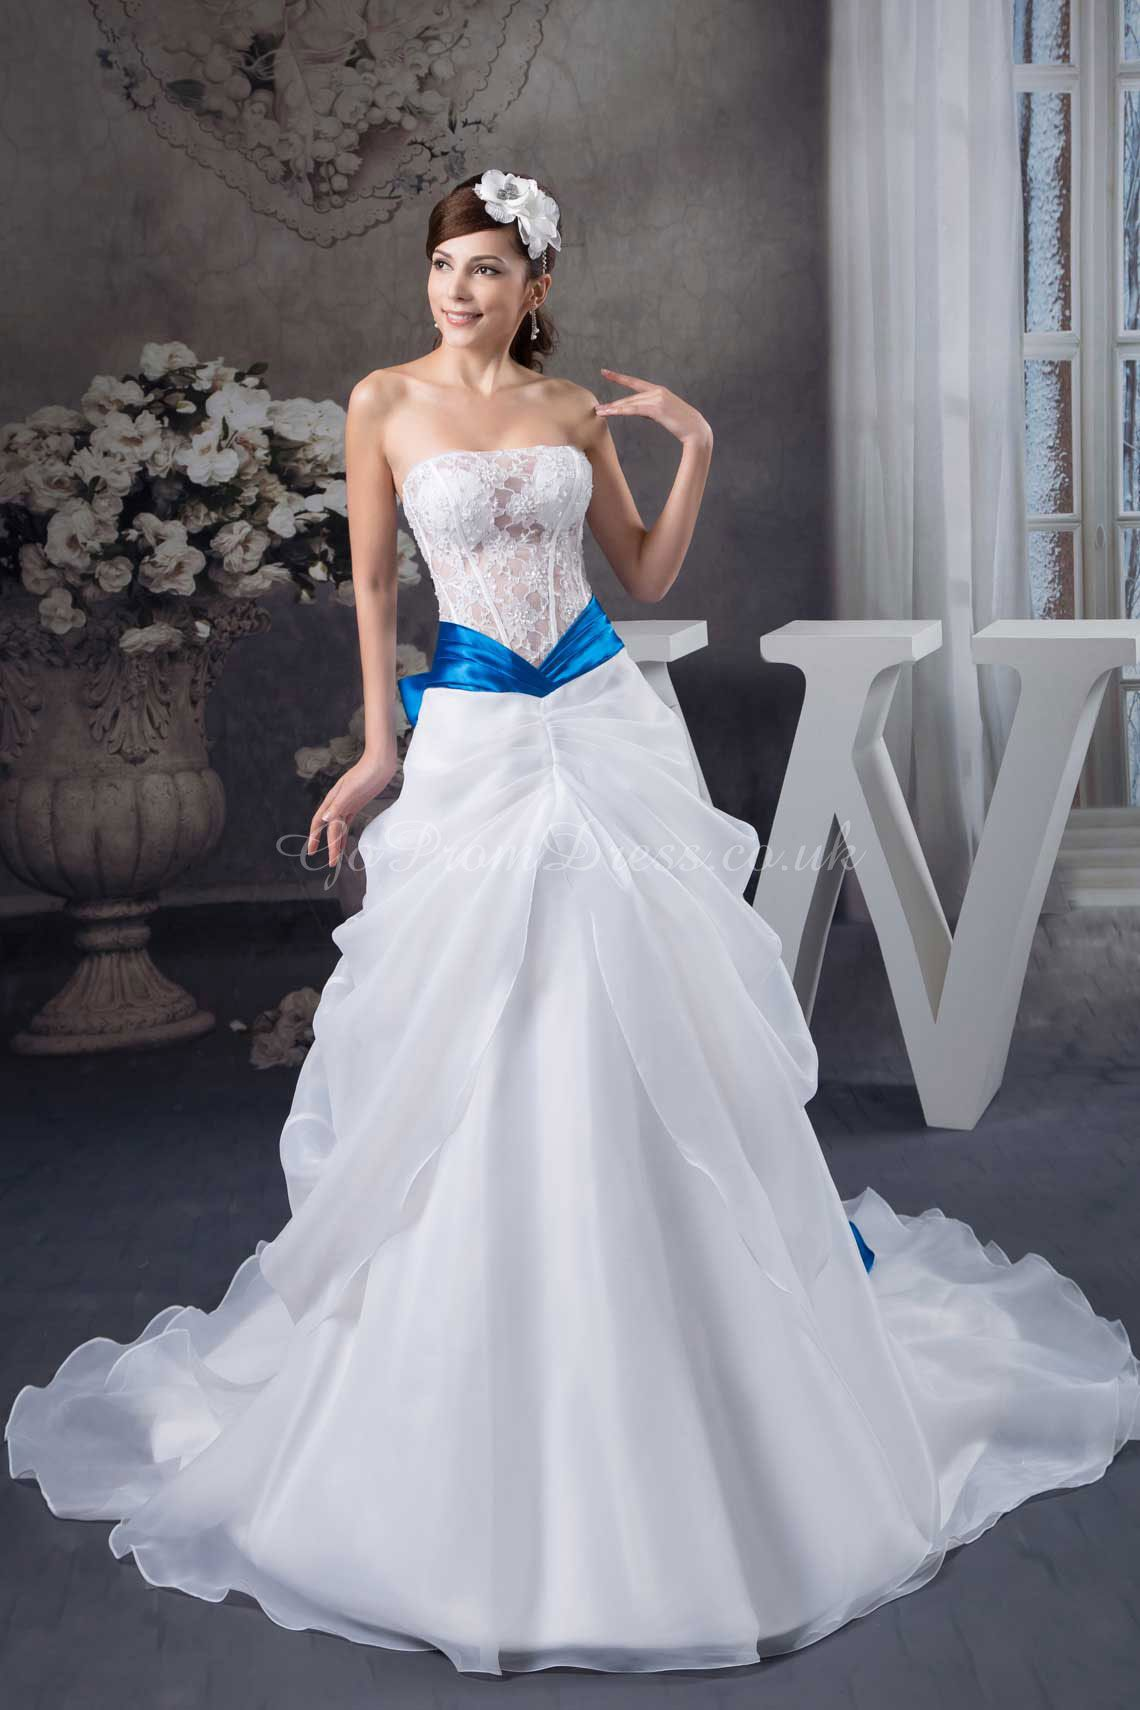 Simple dresses wedding dress blue cool pictures suknie ślubne